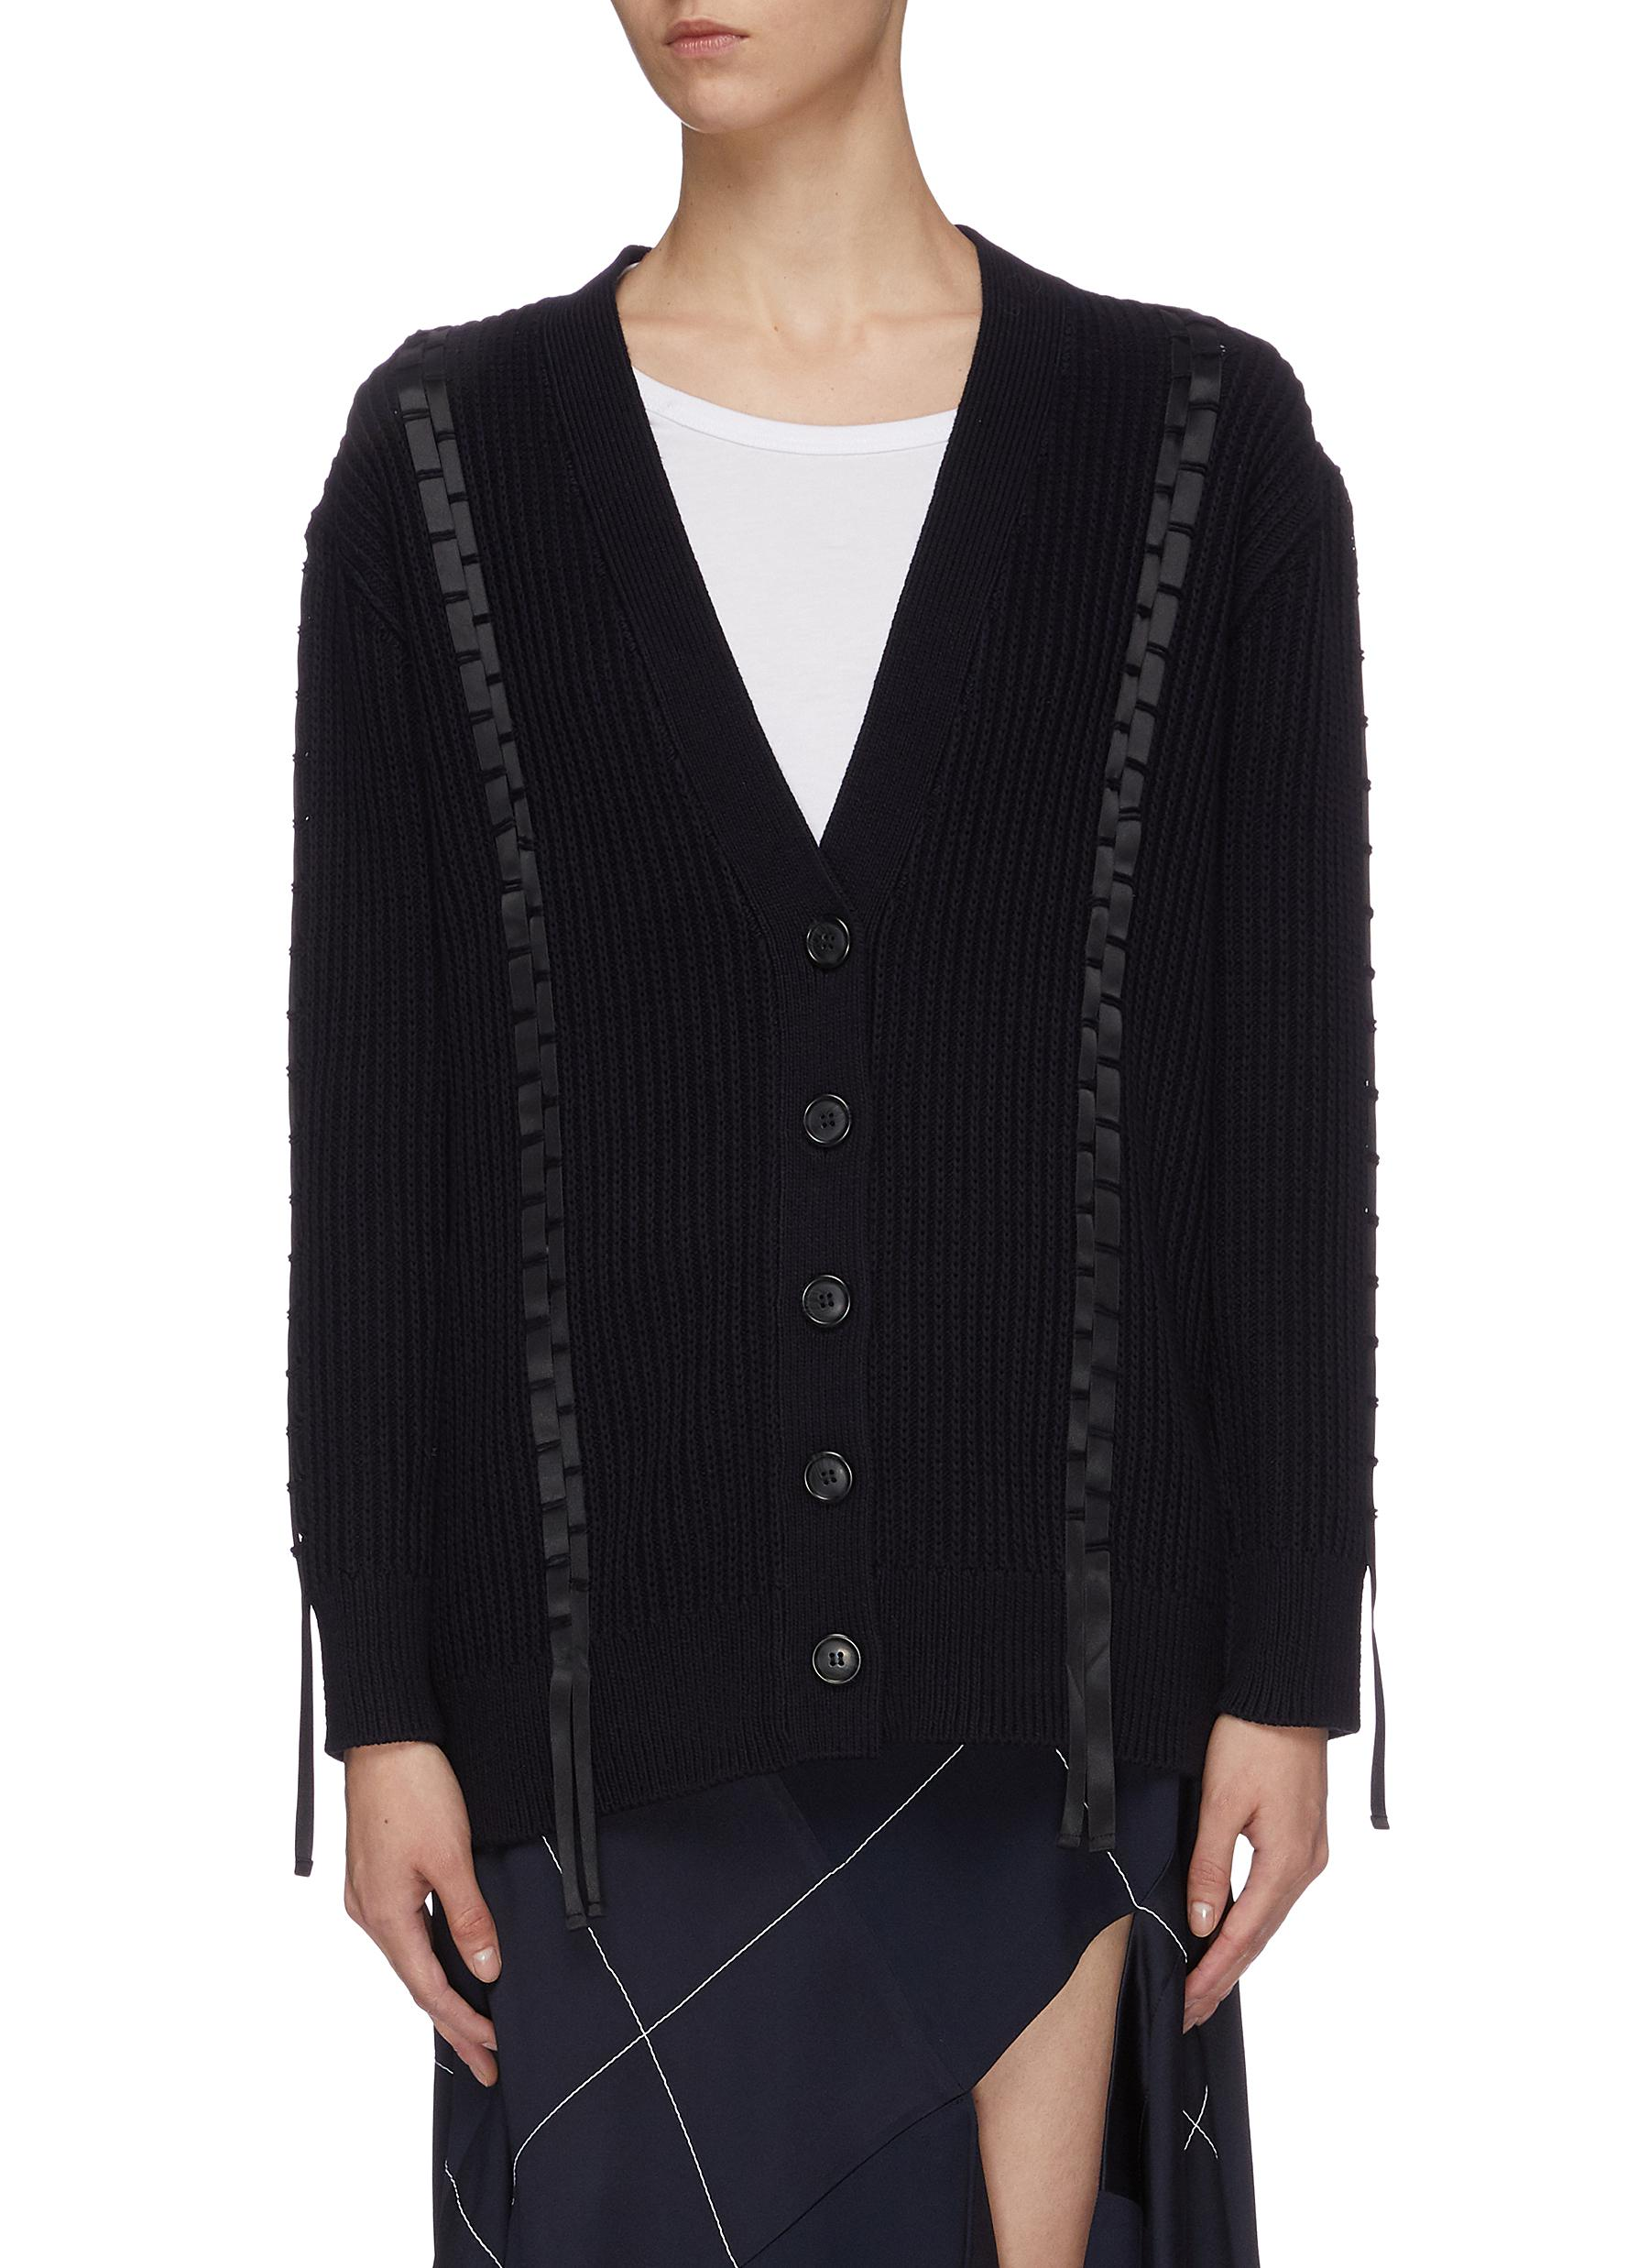 Ribbon trim cotton-wool cardigan by 3.1 Phillip Lim